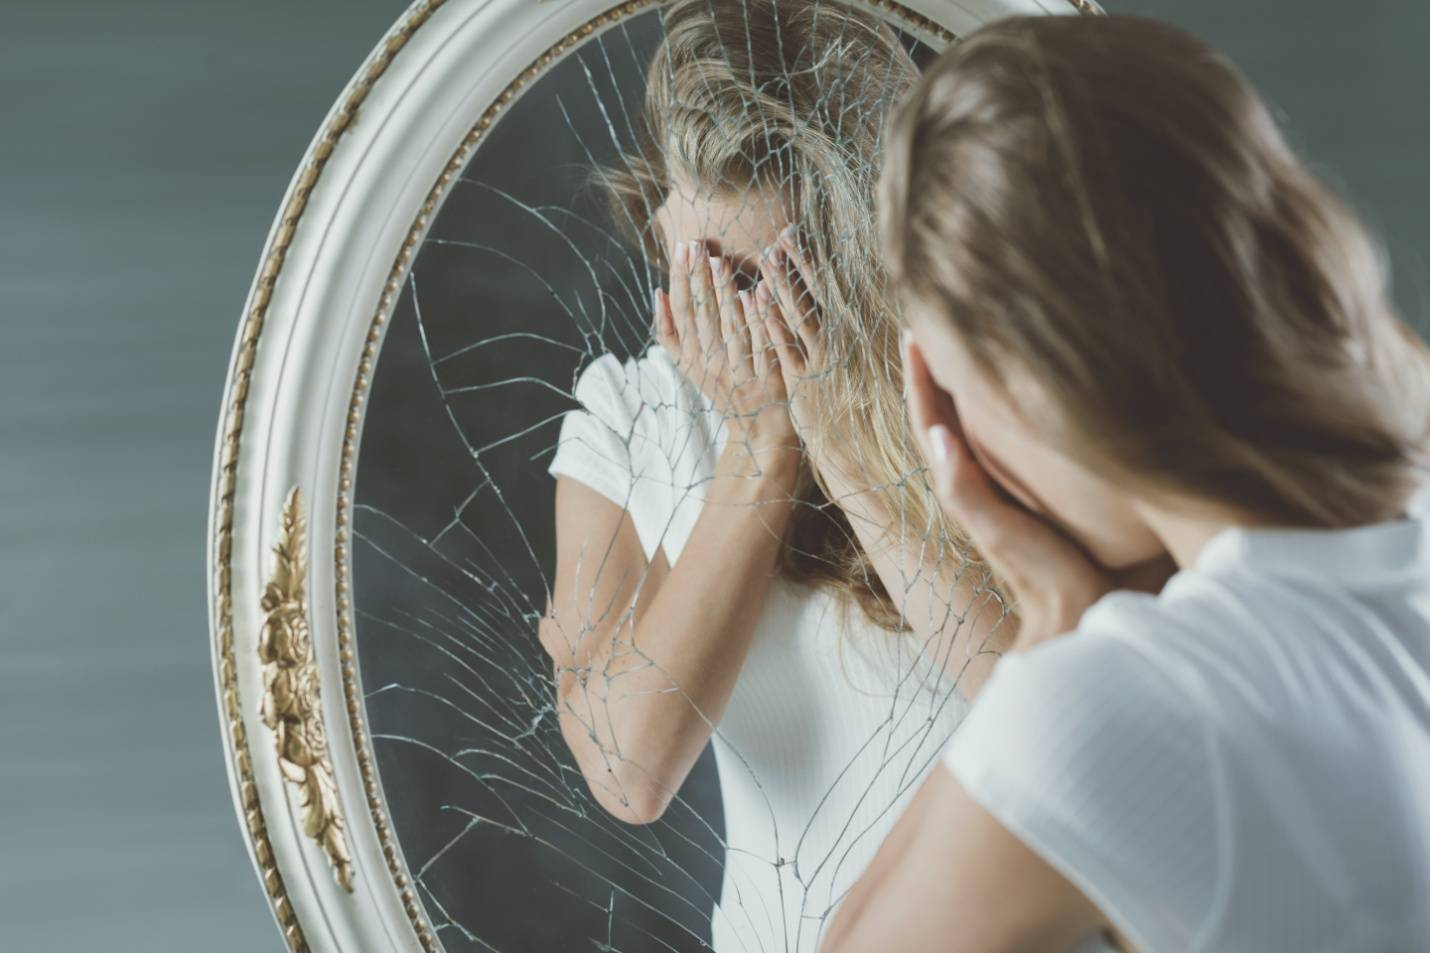 What is it like to suffer from Body Dysmorphic Disorder?